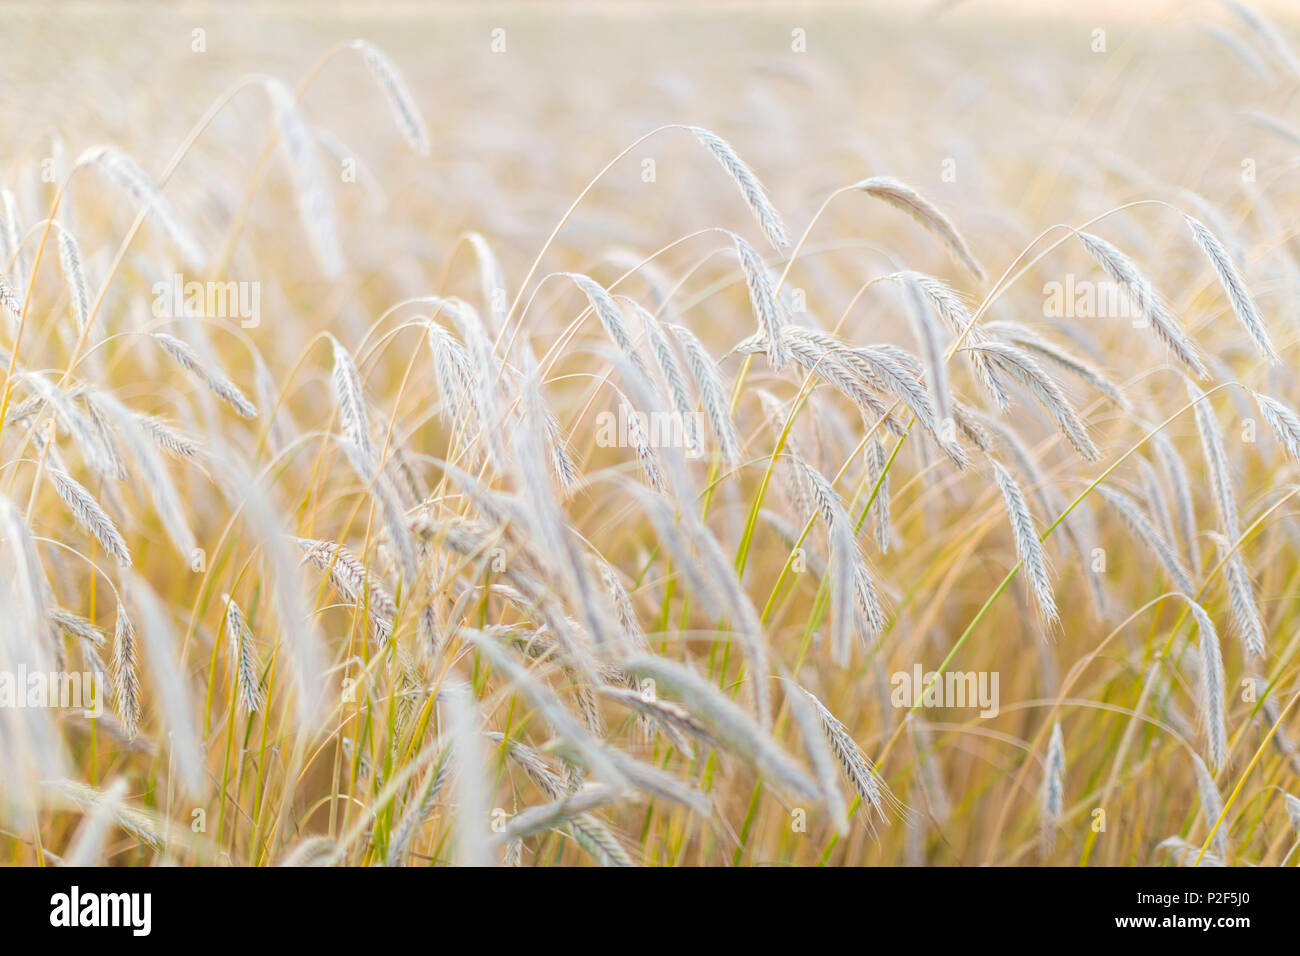 Ears of corn in a field, Wheat, rye, Baltic sea, Bornholm, Denmark, Europe - Stock Image